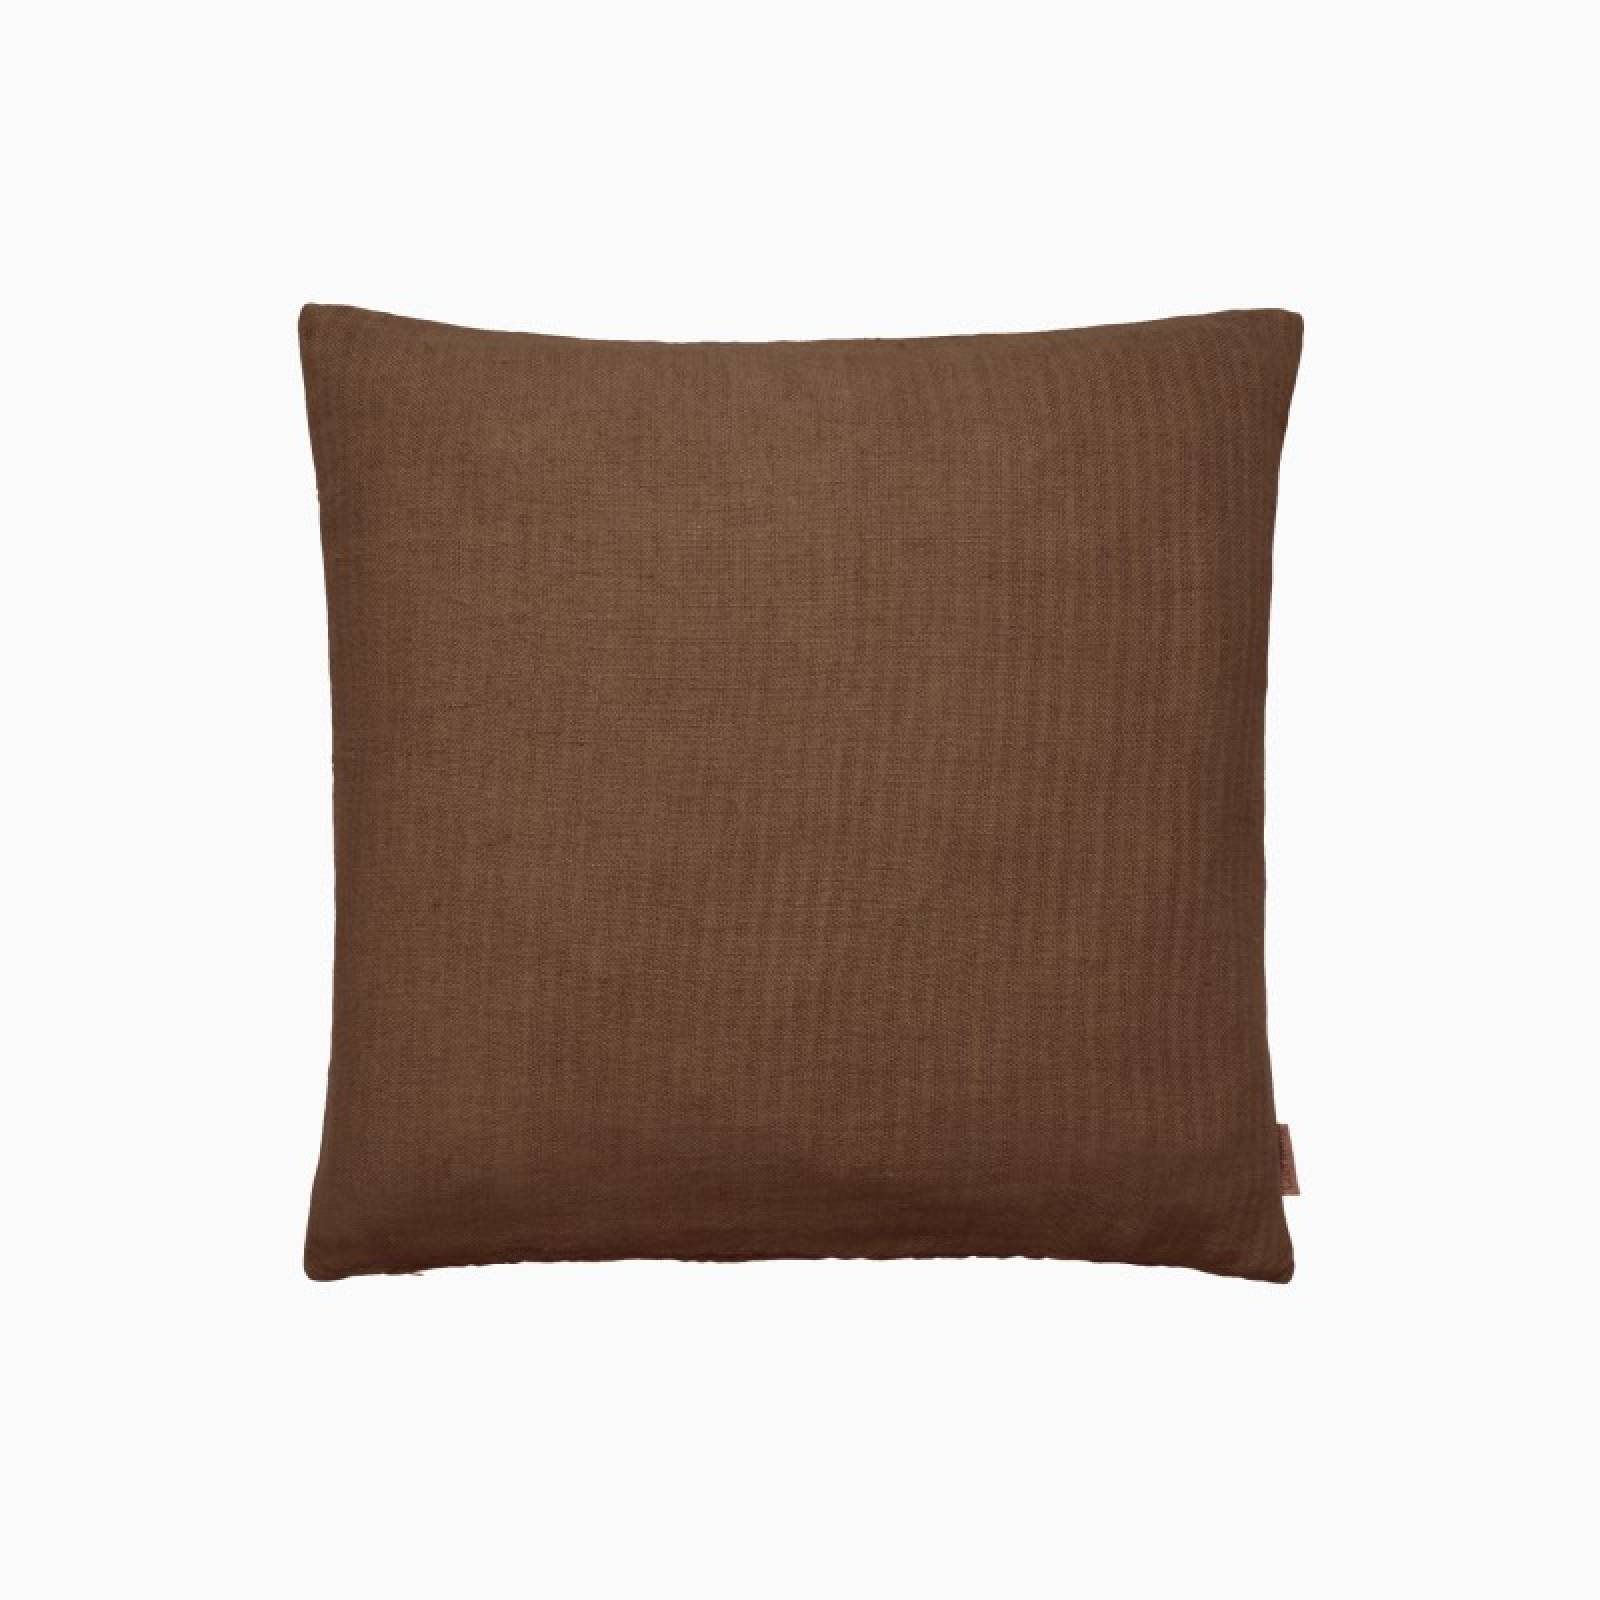 Square Linen Cushion In Rustic Earth